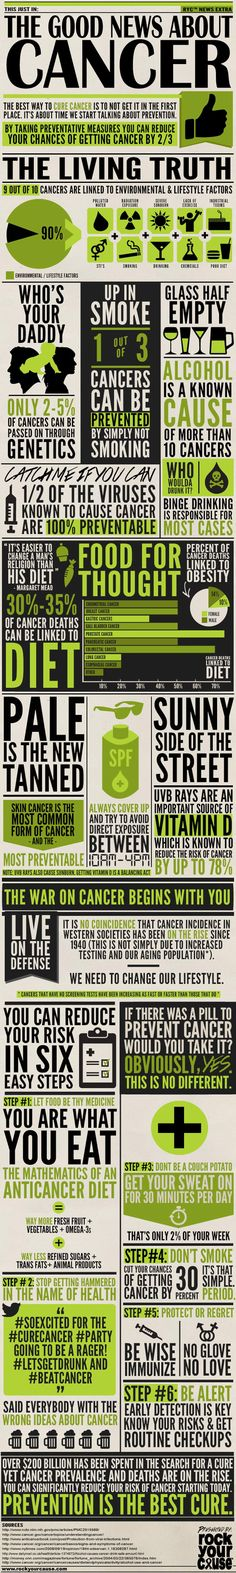 Good News About Cancer - www.tlcforwellbeing.com www.tlcforweightloss.co.za #TLC #health #weightloss